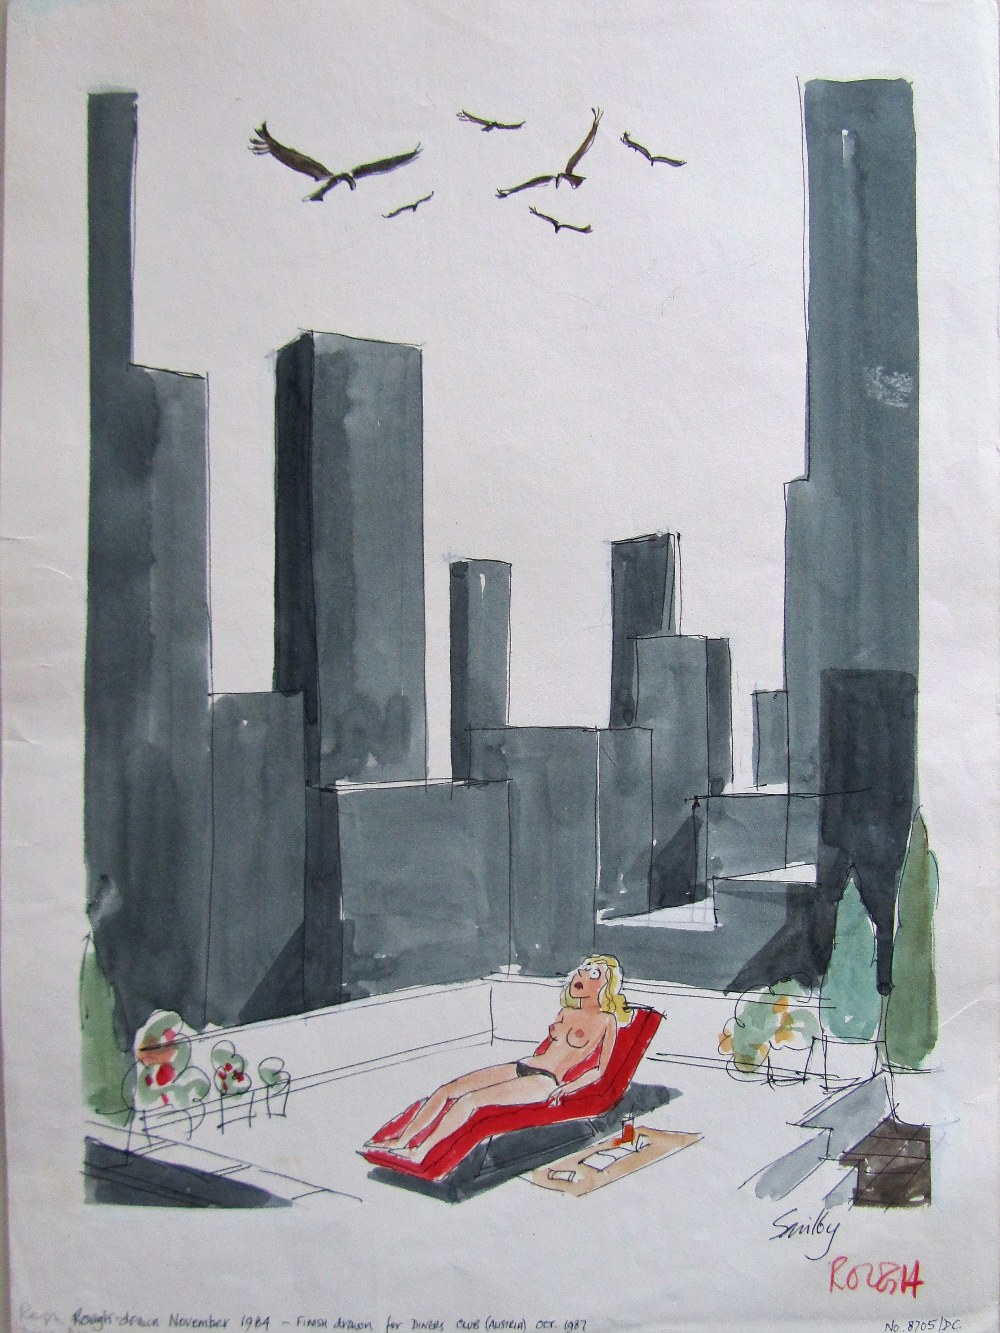 Lot 51 - Smilby, Francis Wilford-Smith 'Vultures and Lady sunbathing on rooftop'